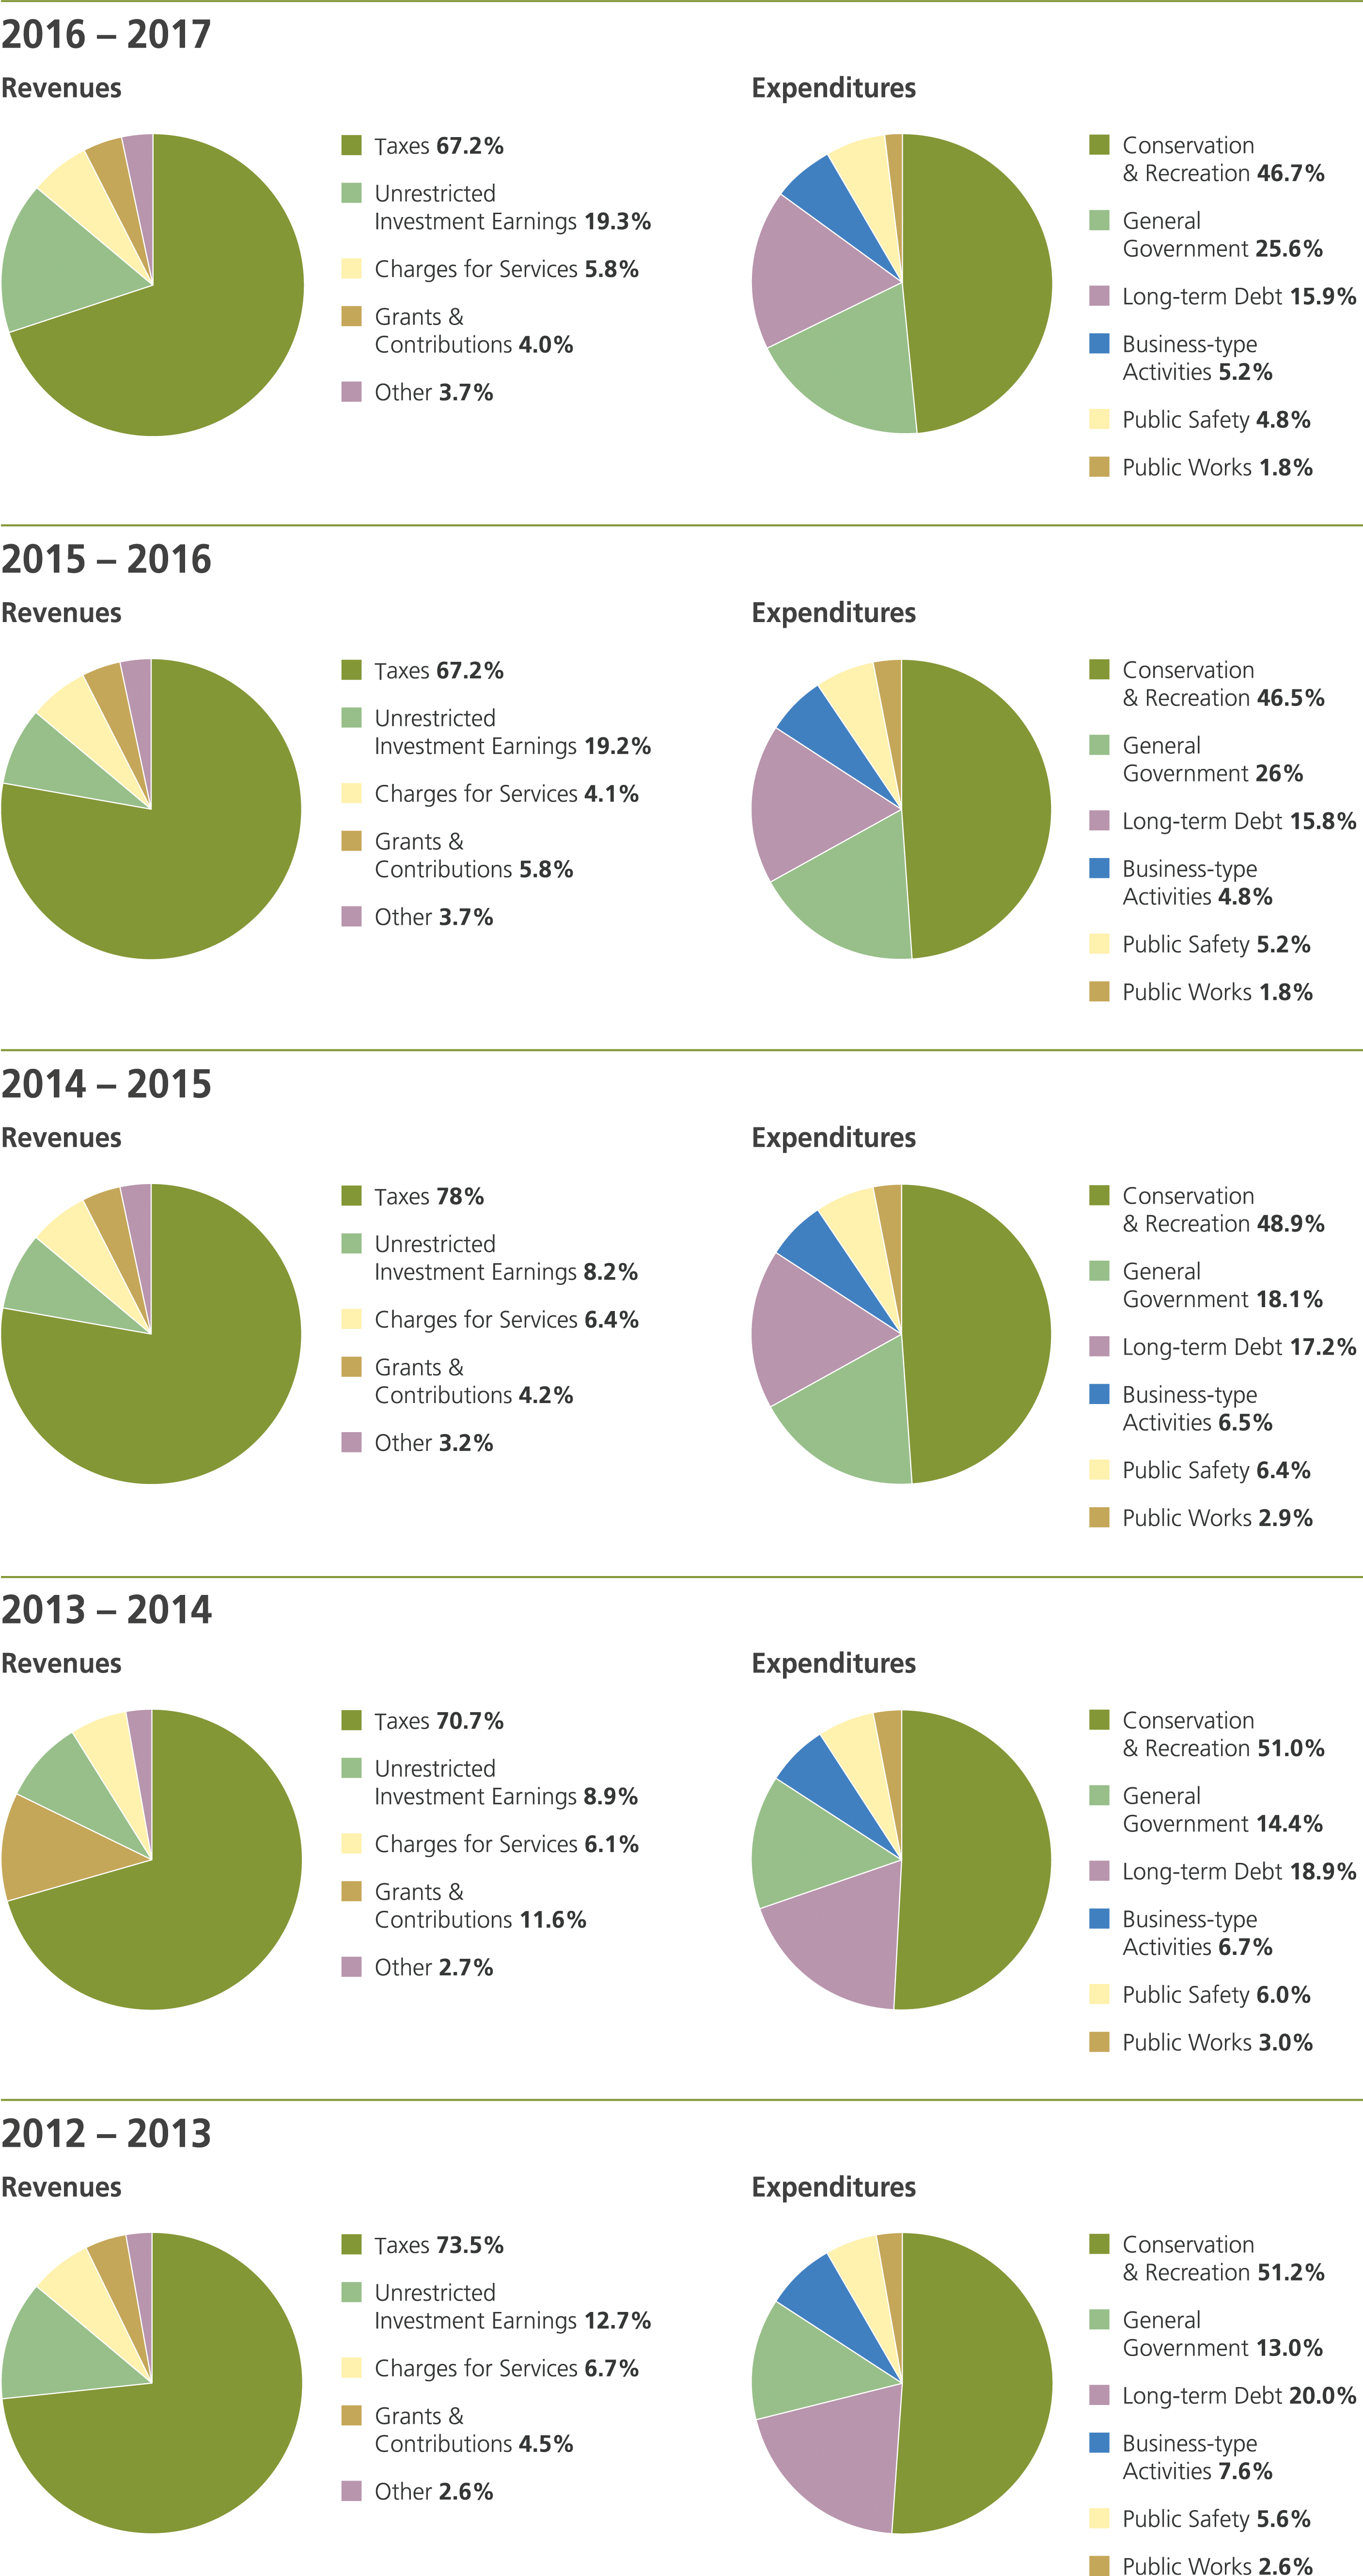 revenues-expenditures-2017.png